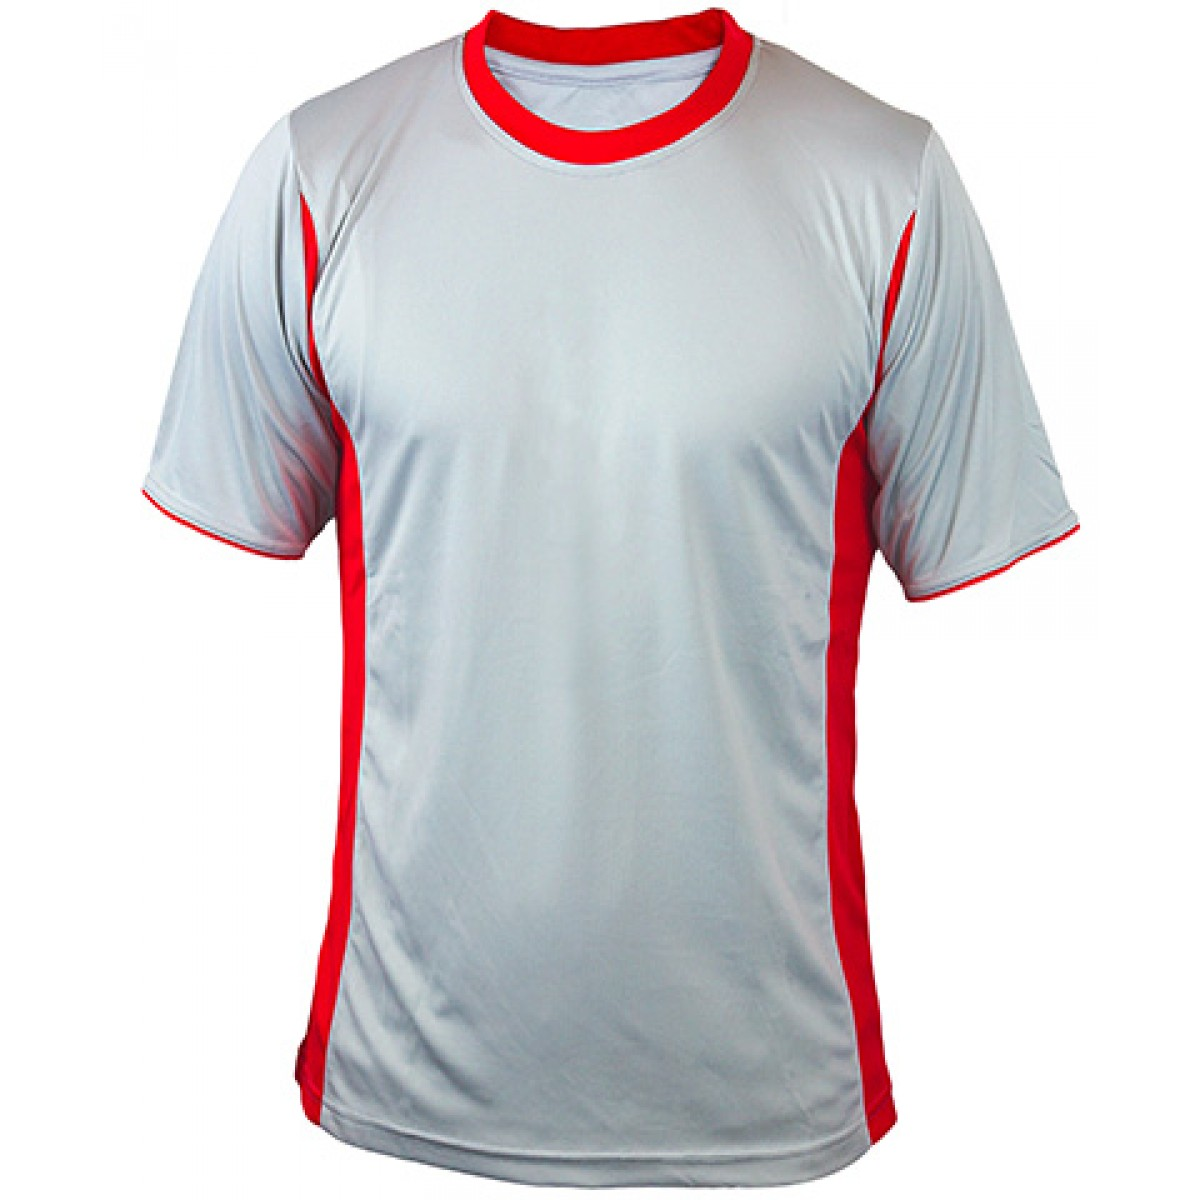 Gray Short Sleeves Performance With Red Side Insert-Gray/Red-L